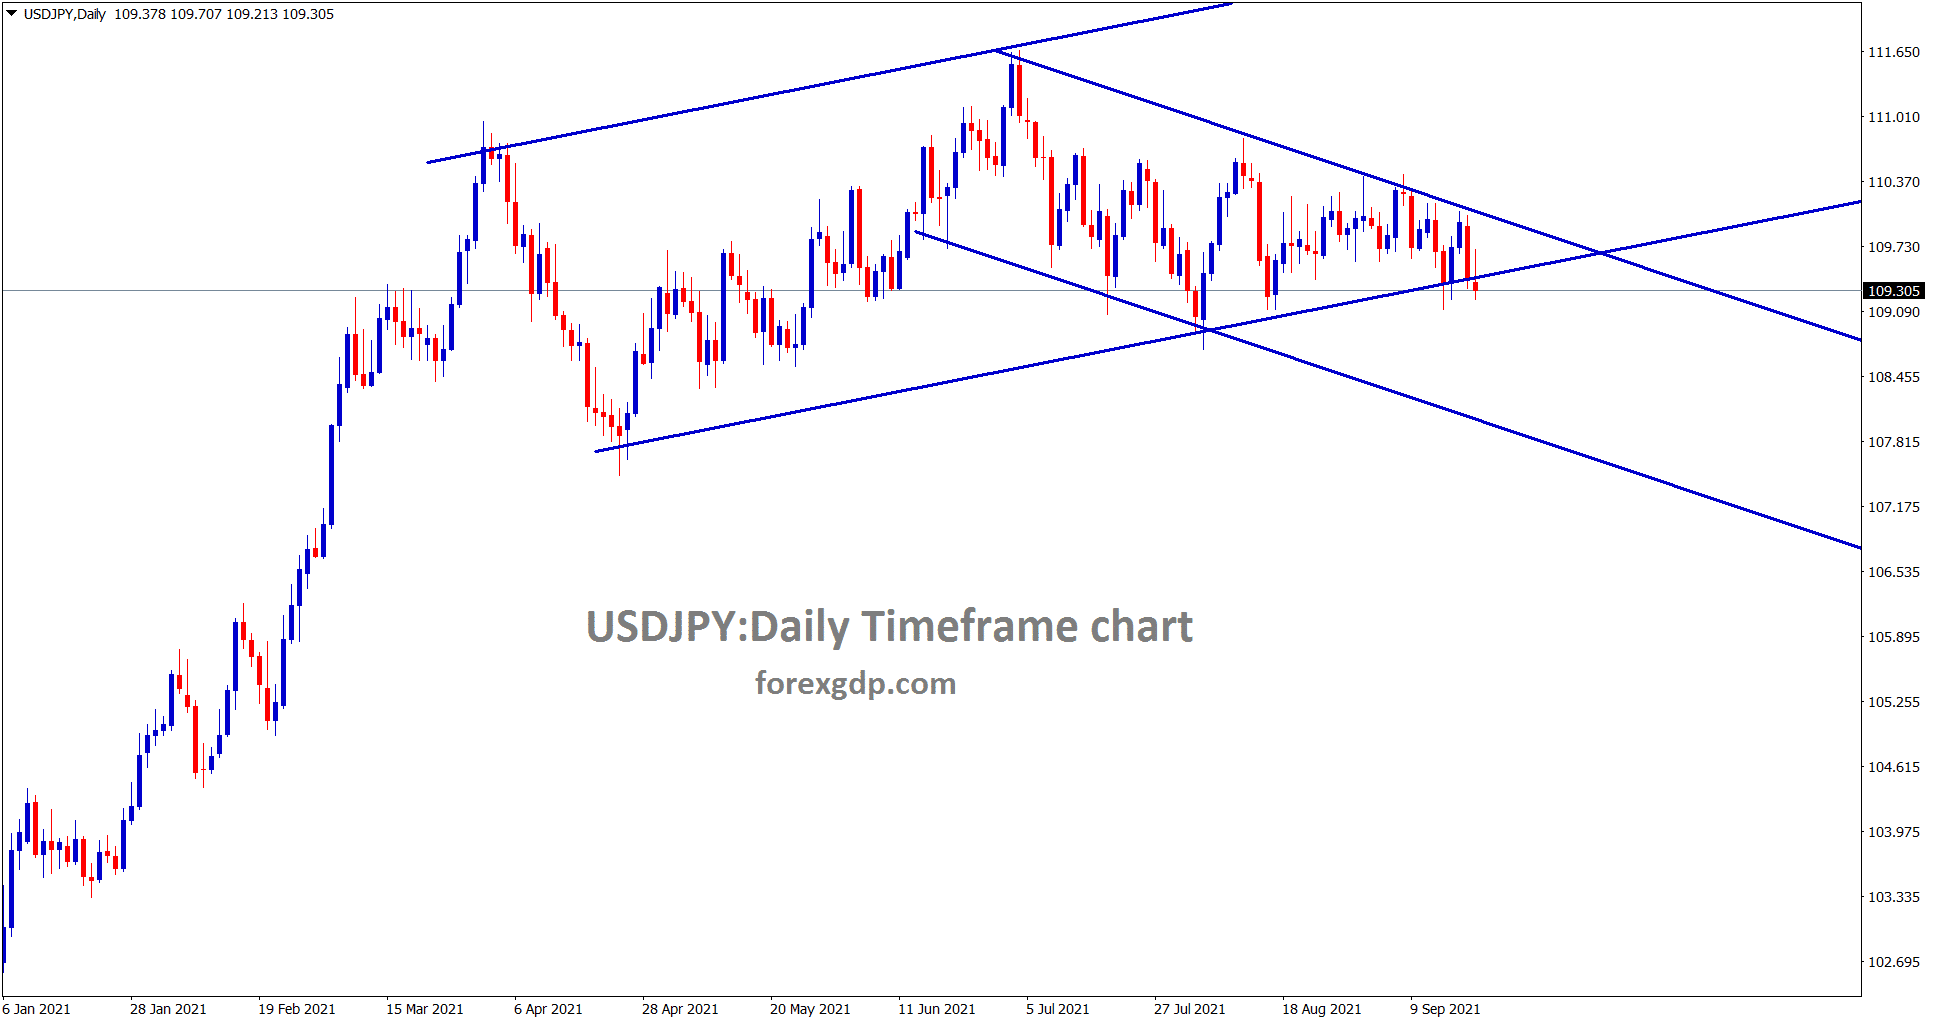 USDJPY is still moving between the channels